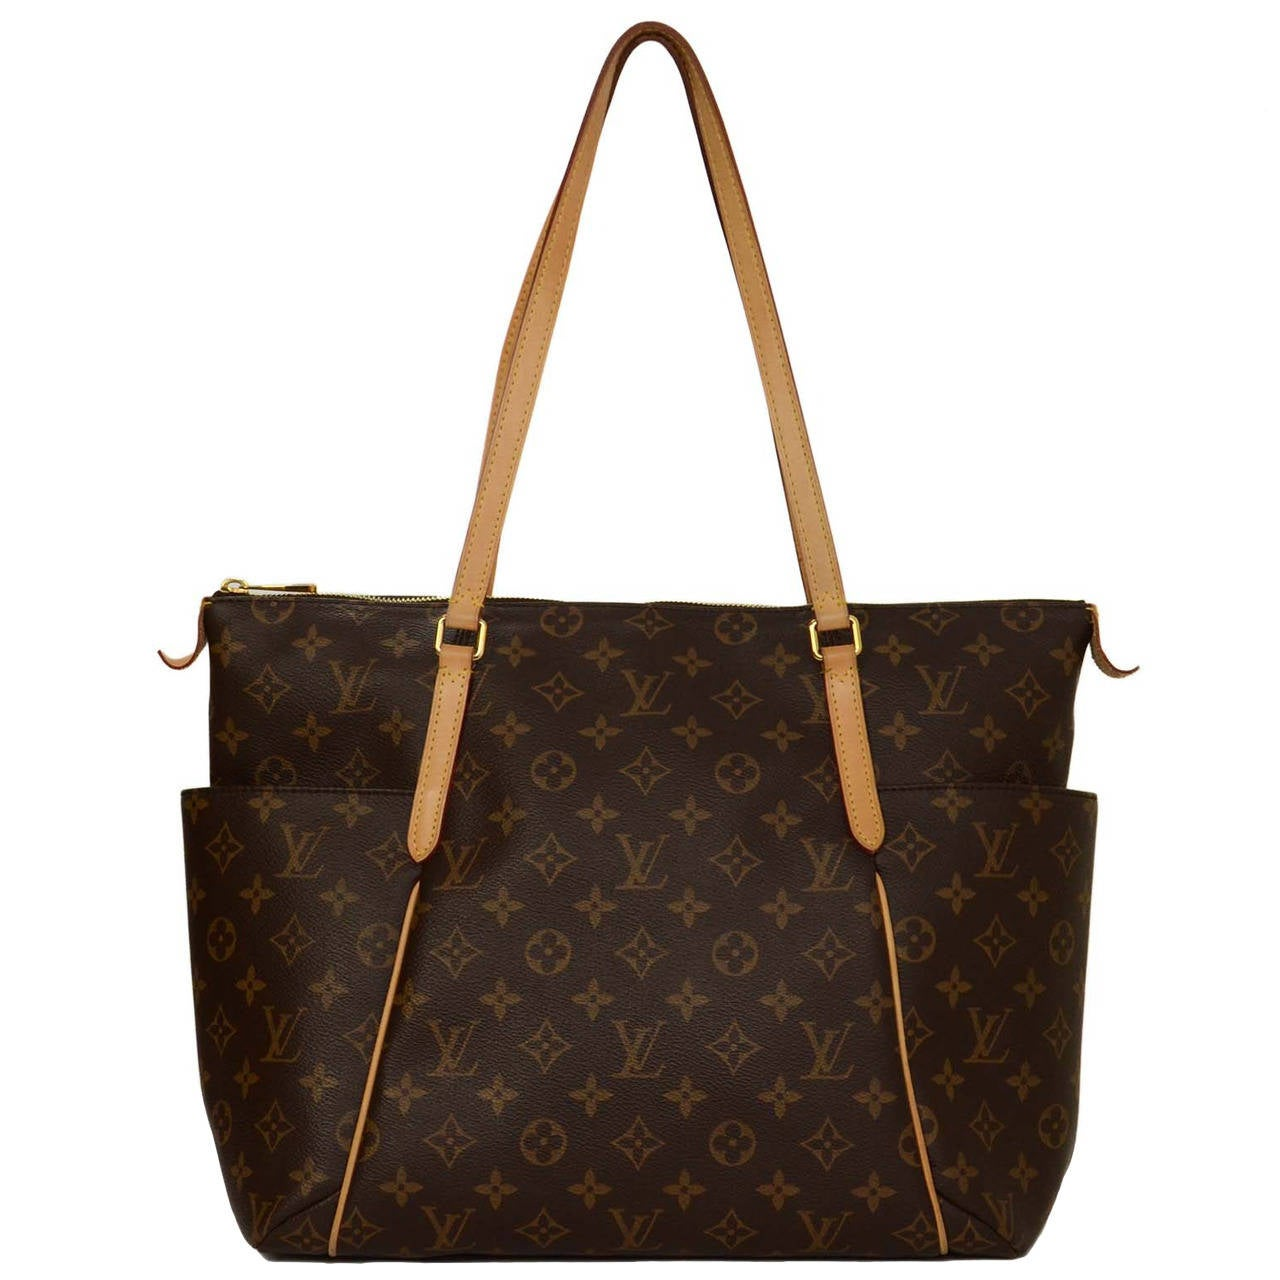 3d49feb69618 LOUIS VUITTON Monogram Canvas